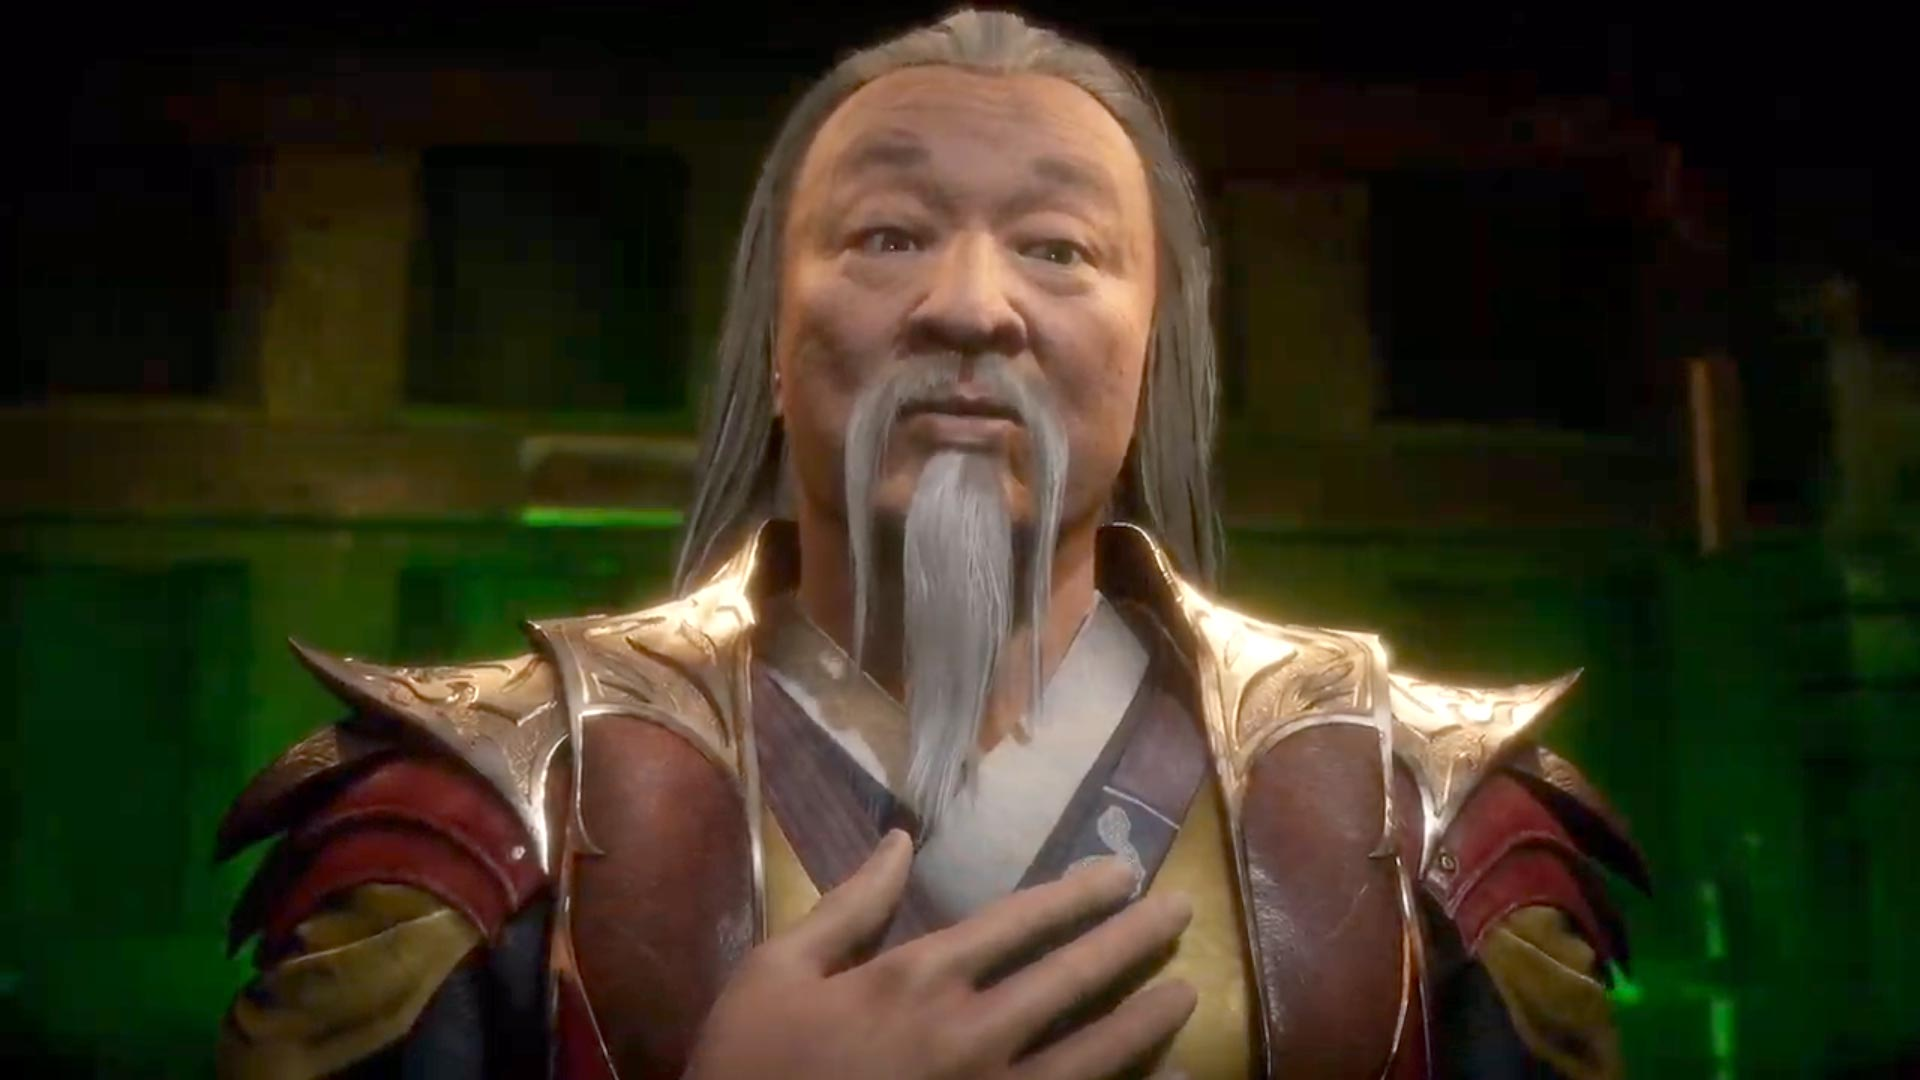 Shang Tsung in Mortal Kombat 11 3 out of 4 image gallery